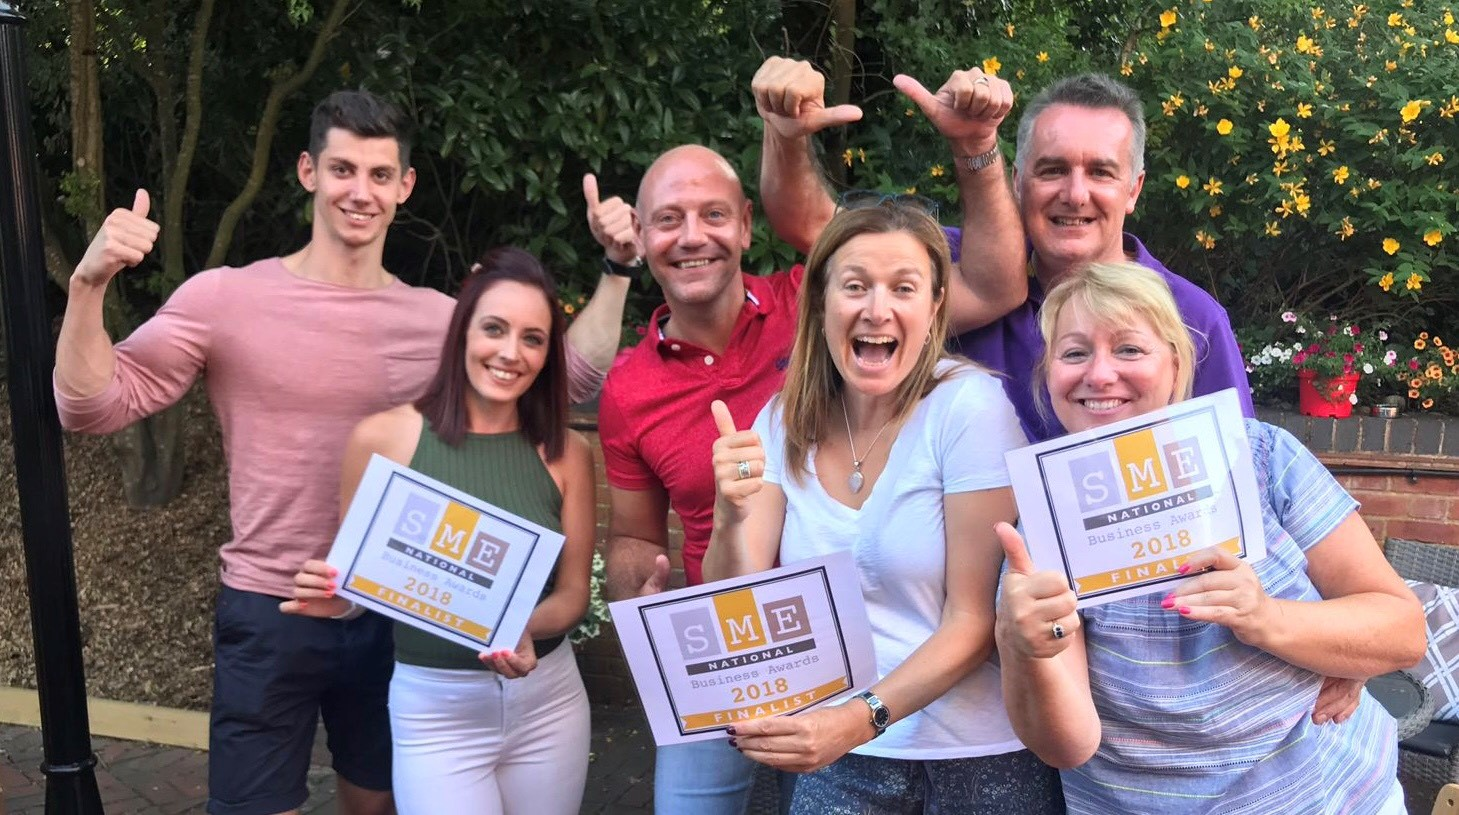 Simply Amazing Training Score a Hat Trick at SME National Business Awards 2018